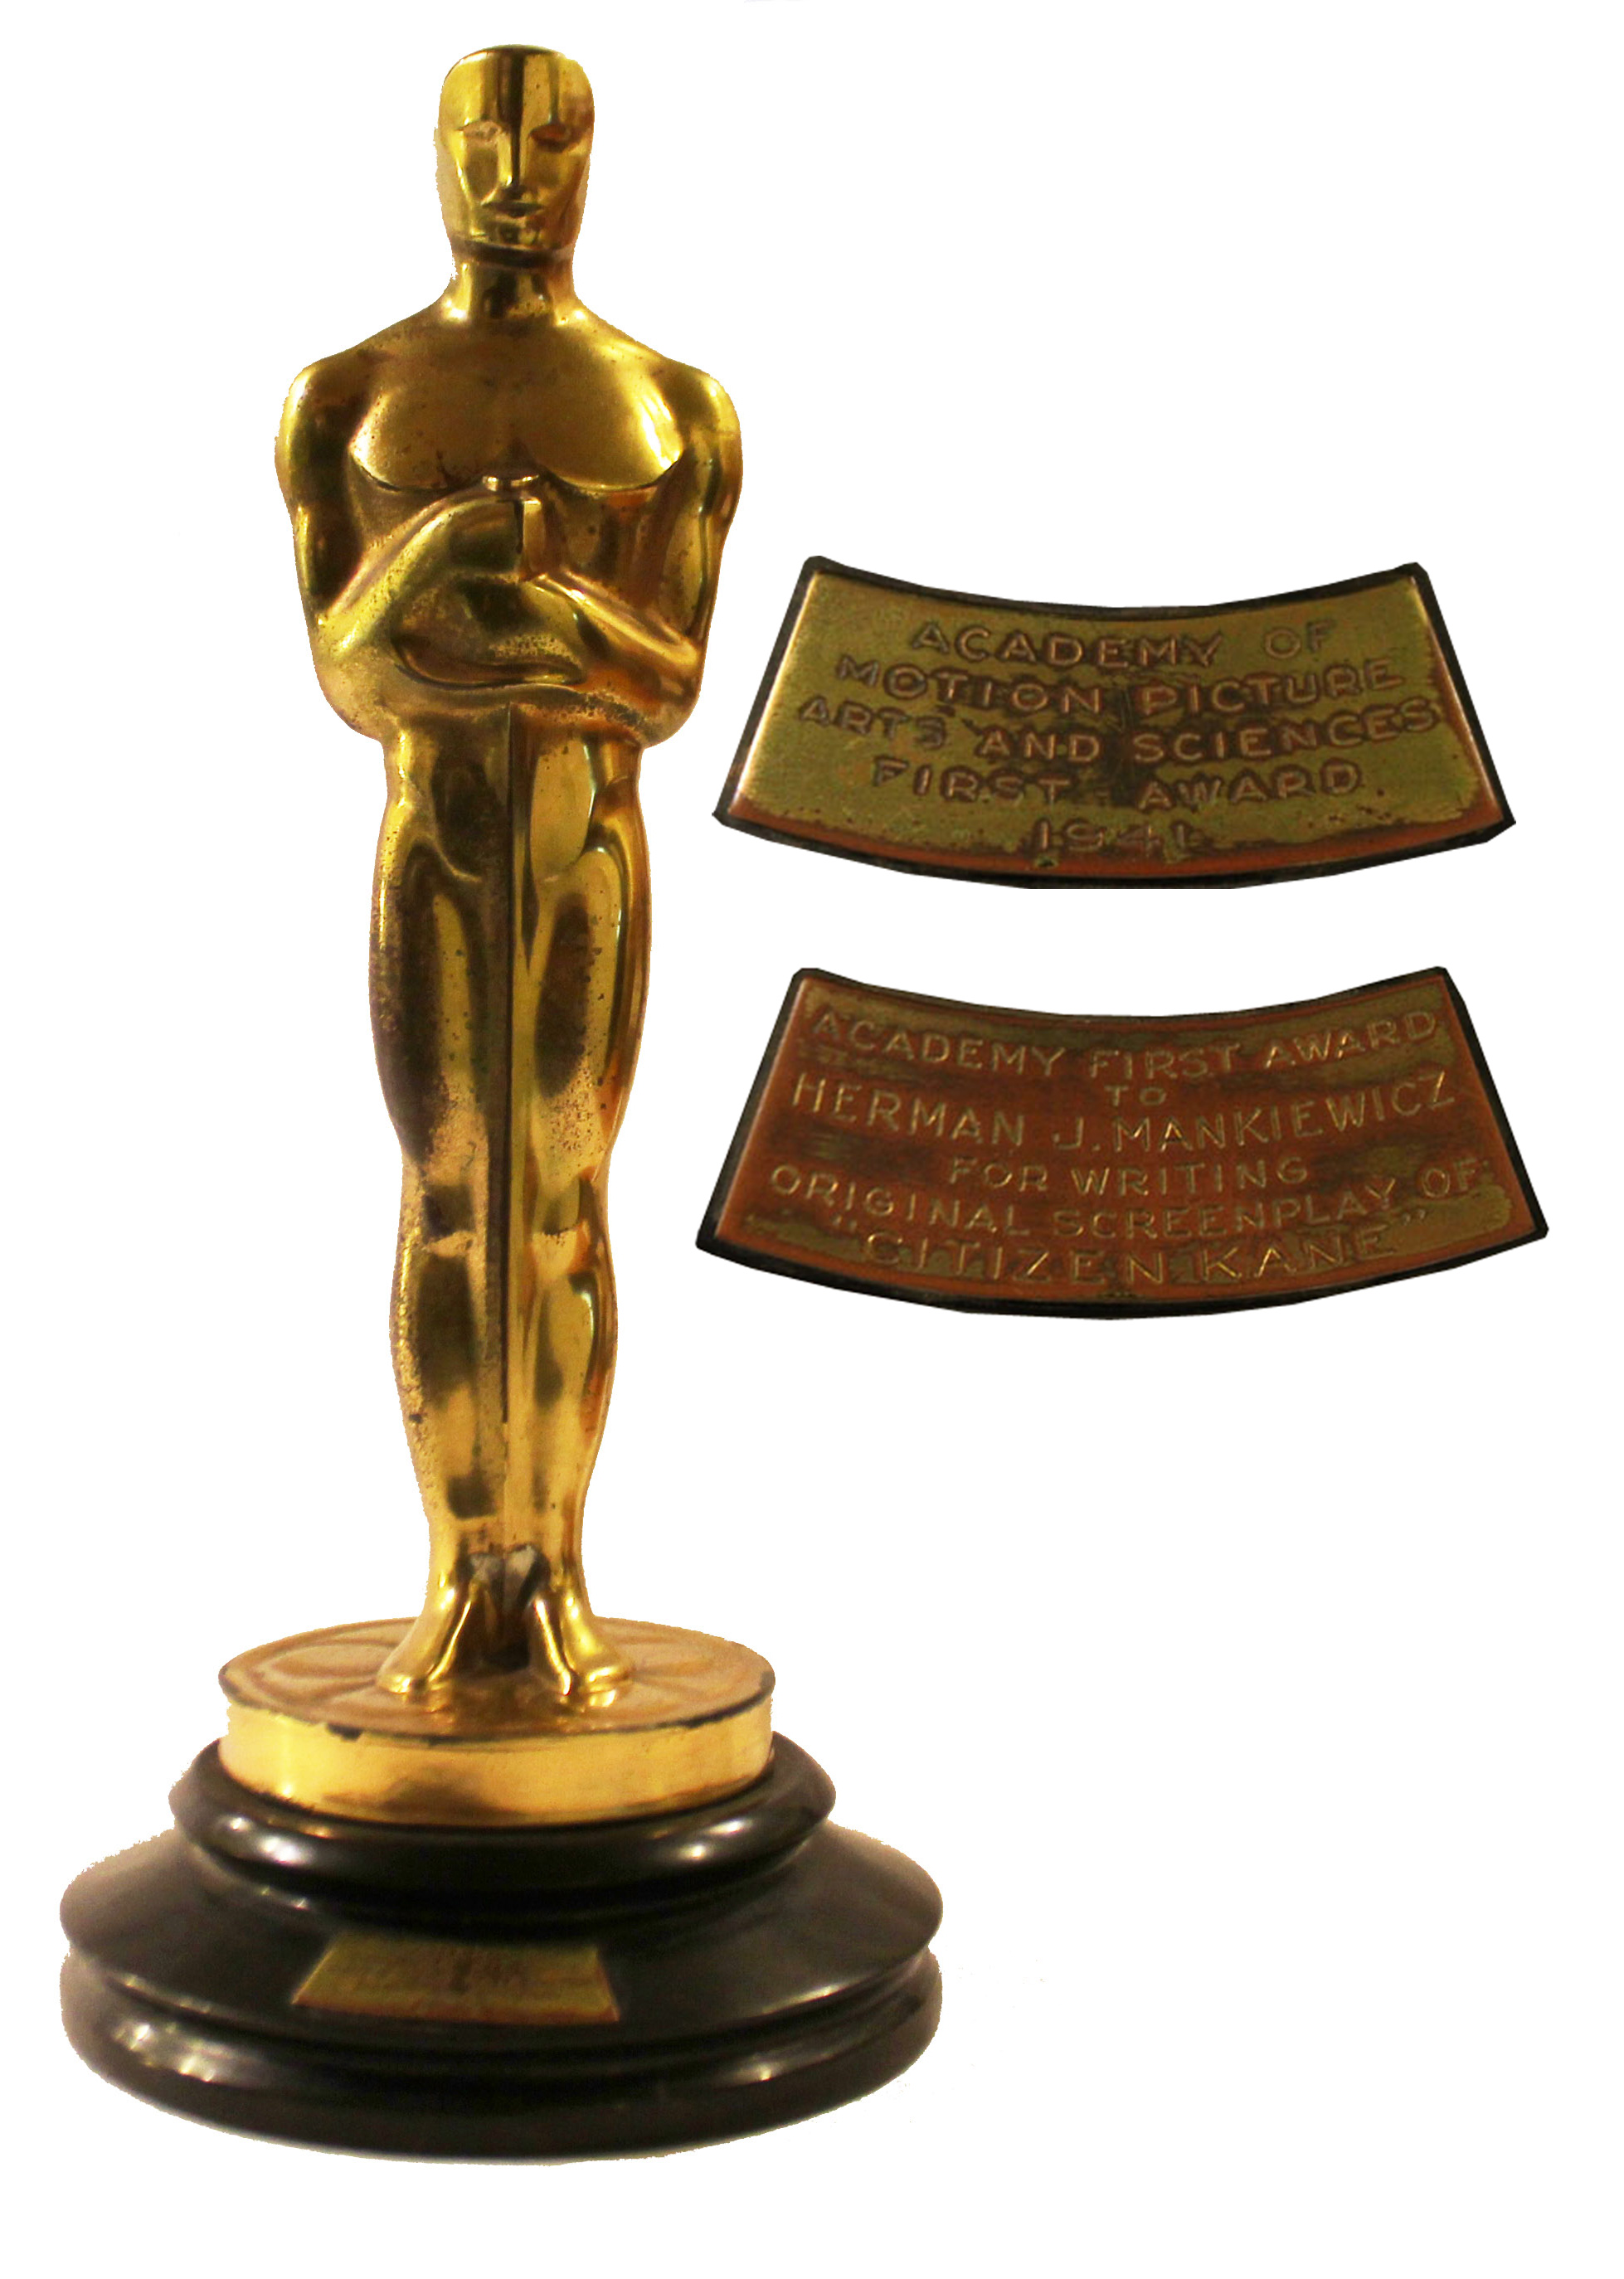 "Orson Welles Memorabilia Original Oscar Awarded to Herman Mankiewicz for Writing ""Citizen Kane"" -- The Only Academy Award Won by ""Citizen Kane,"" Voted the Greatest American Film of All-Time"